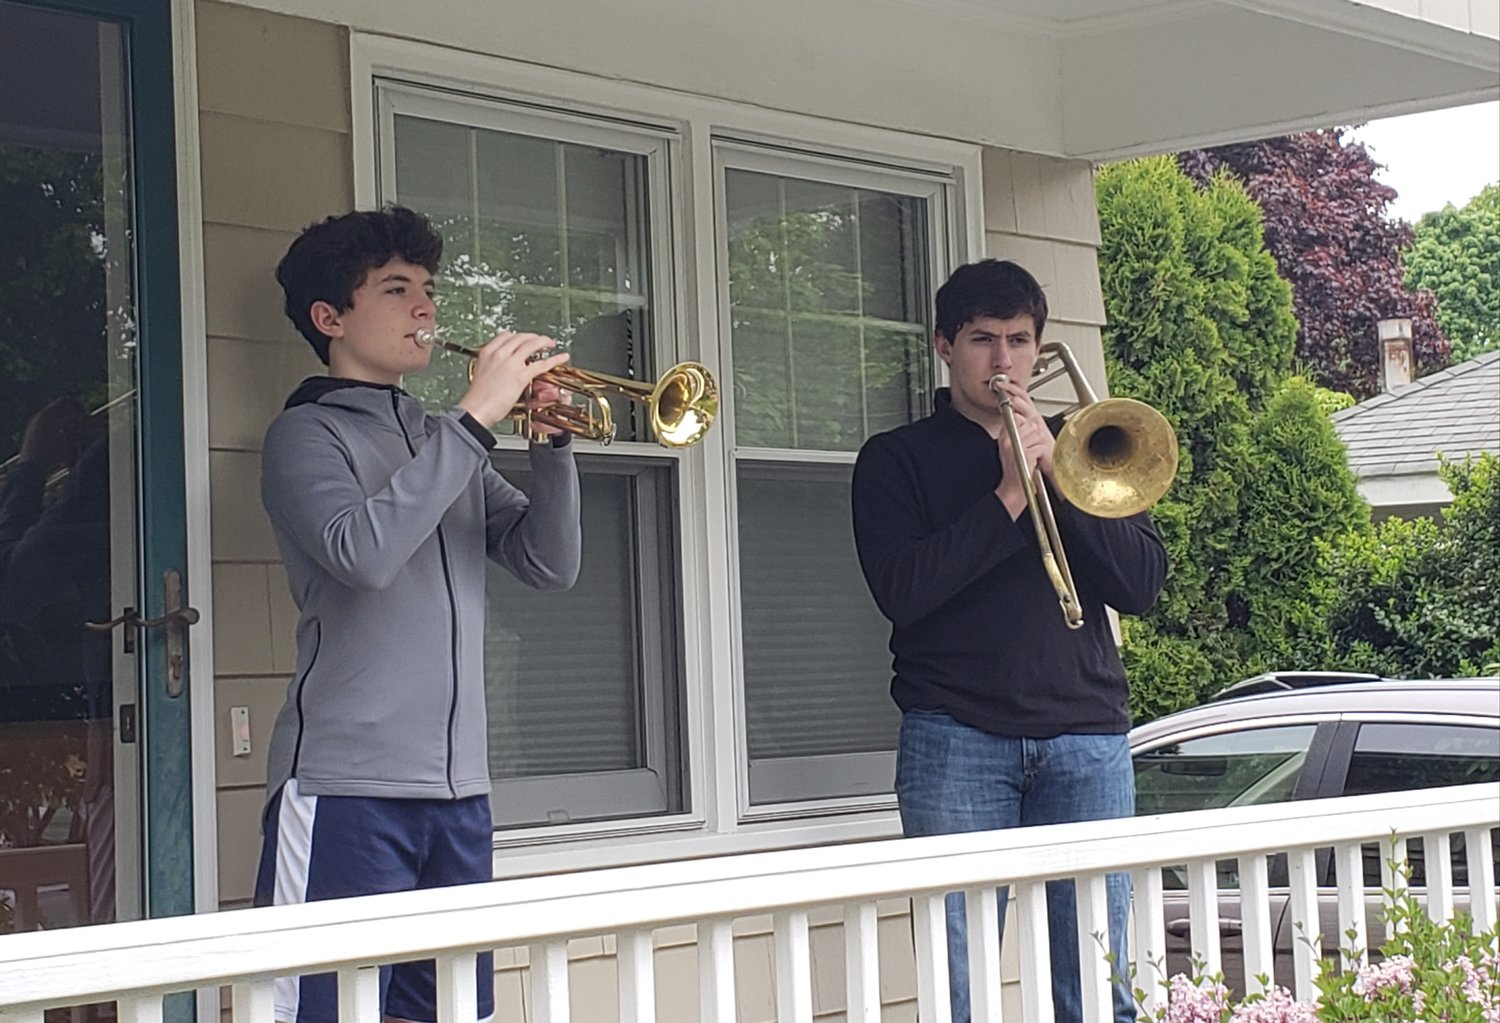 Liam O'Neal (left) and his brother Connor, both students at Barrington High School, share a musical tribute to fallen veterans on Memorial Day.